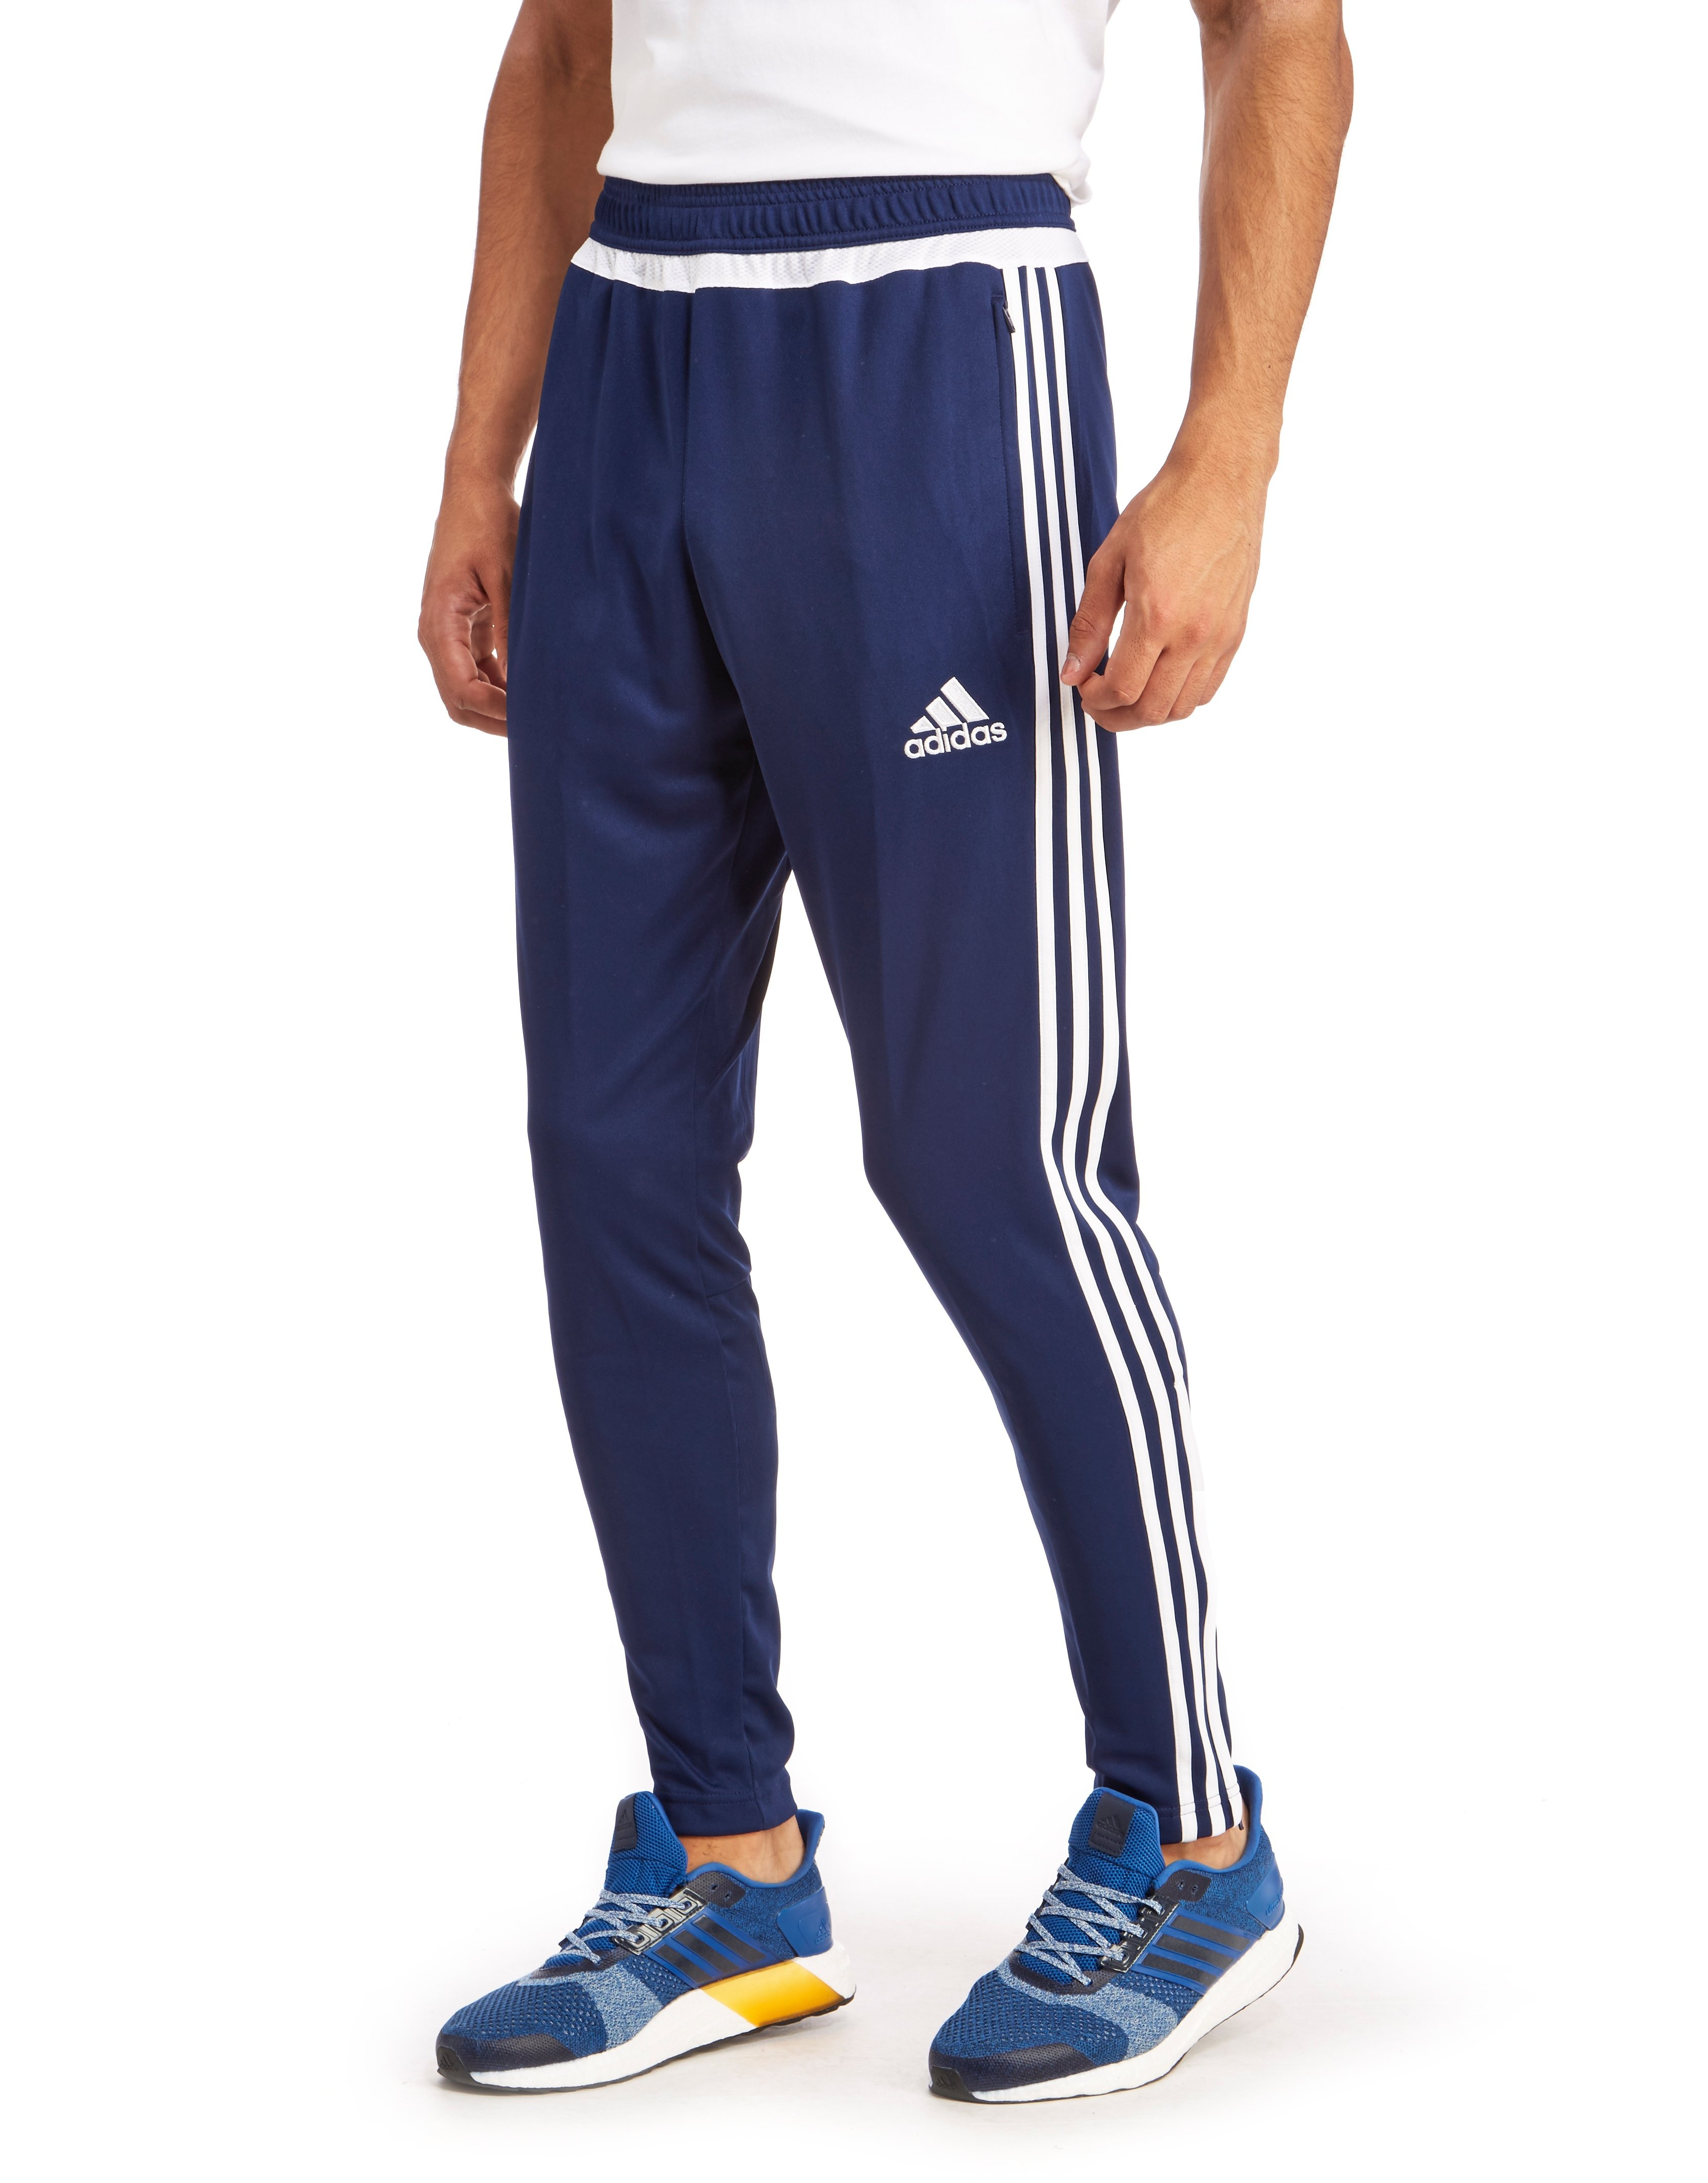 Køb adidas Tiro 15 Poly Training Pants i Blå | JD Sports